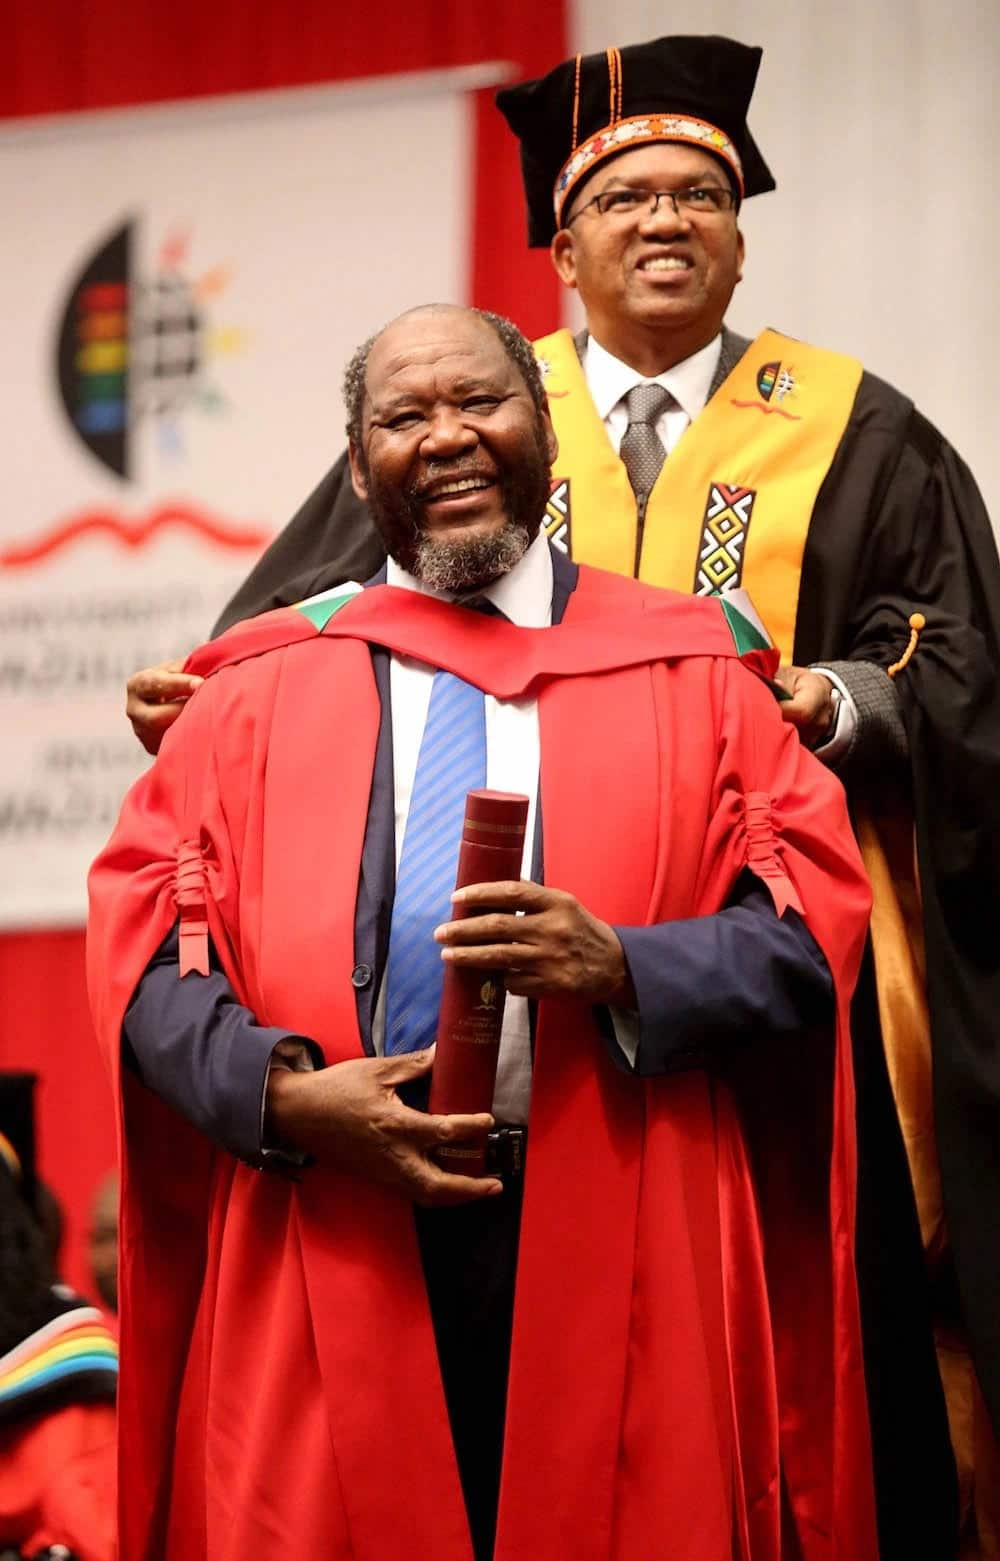 Former Statistician-General Pali Lehohla was awarded an honorary doctorate. Source: IOL